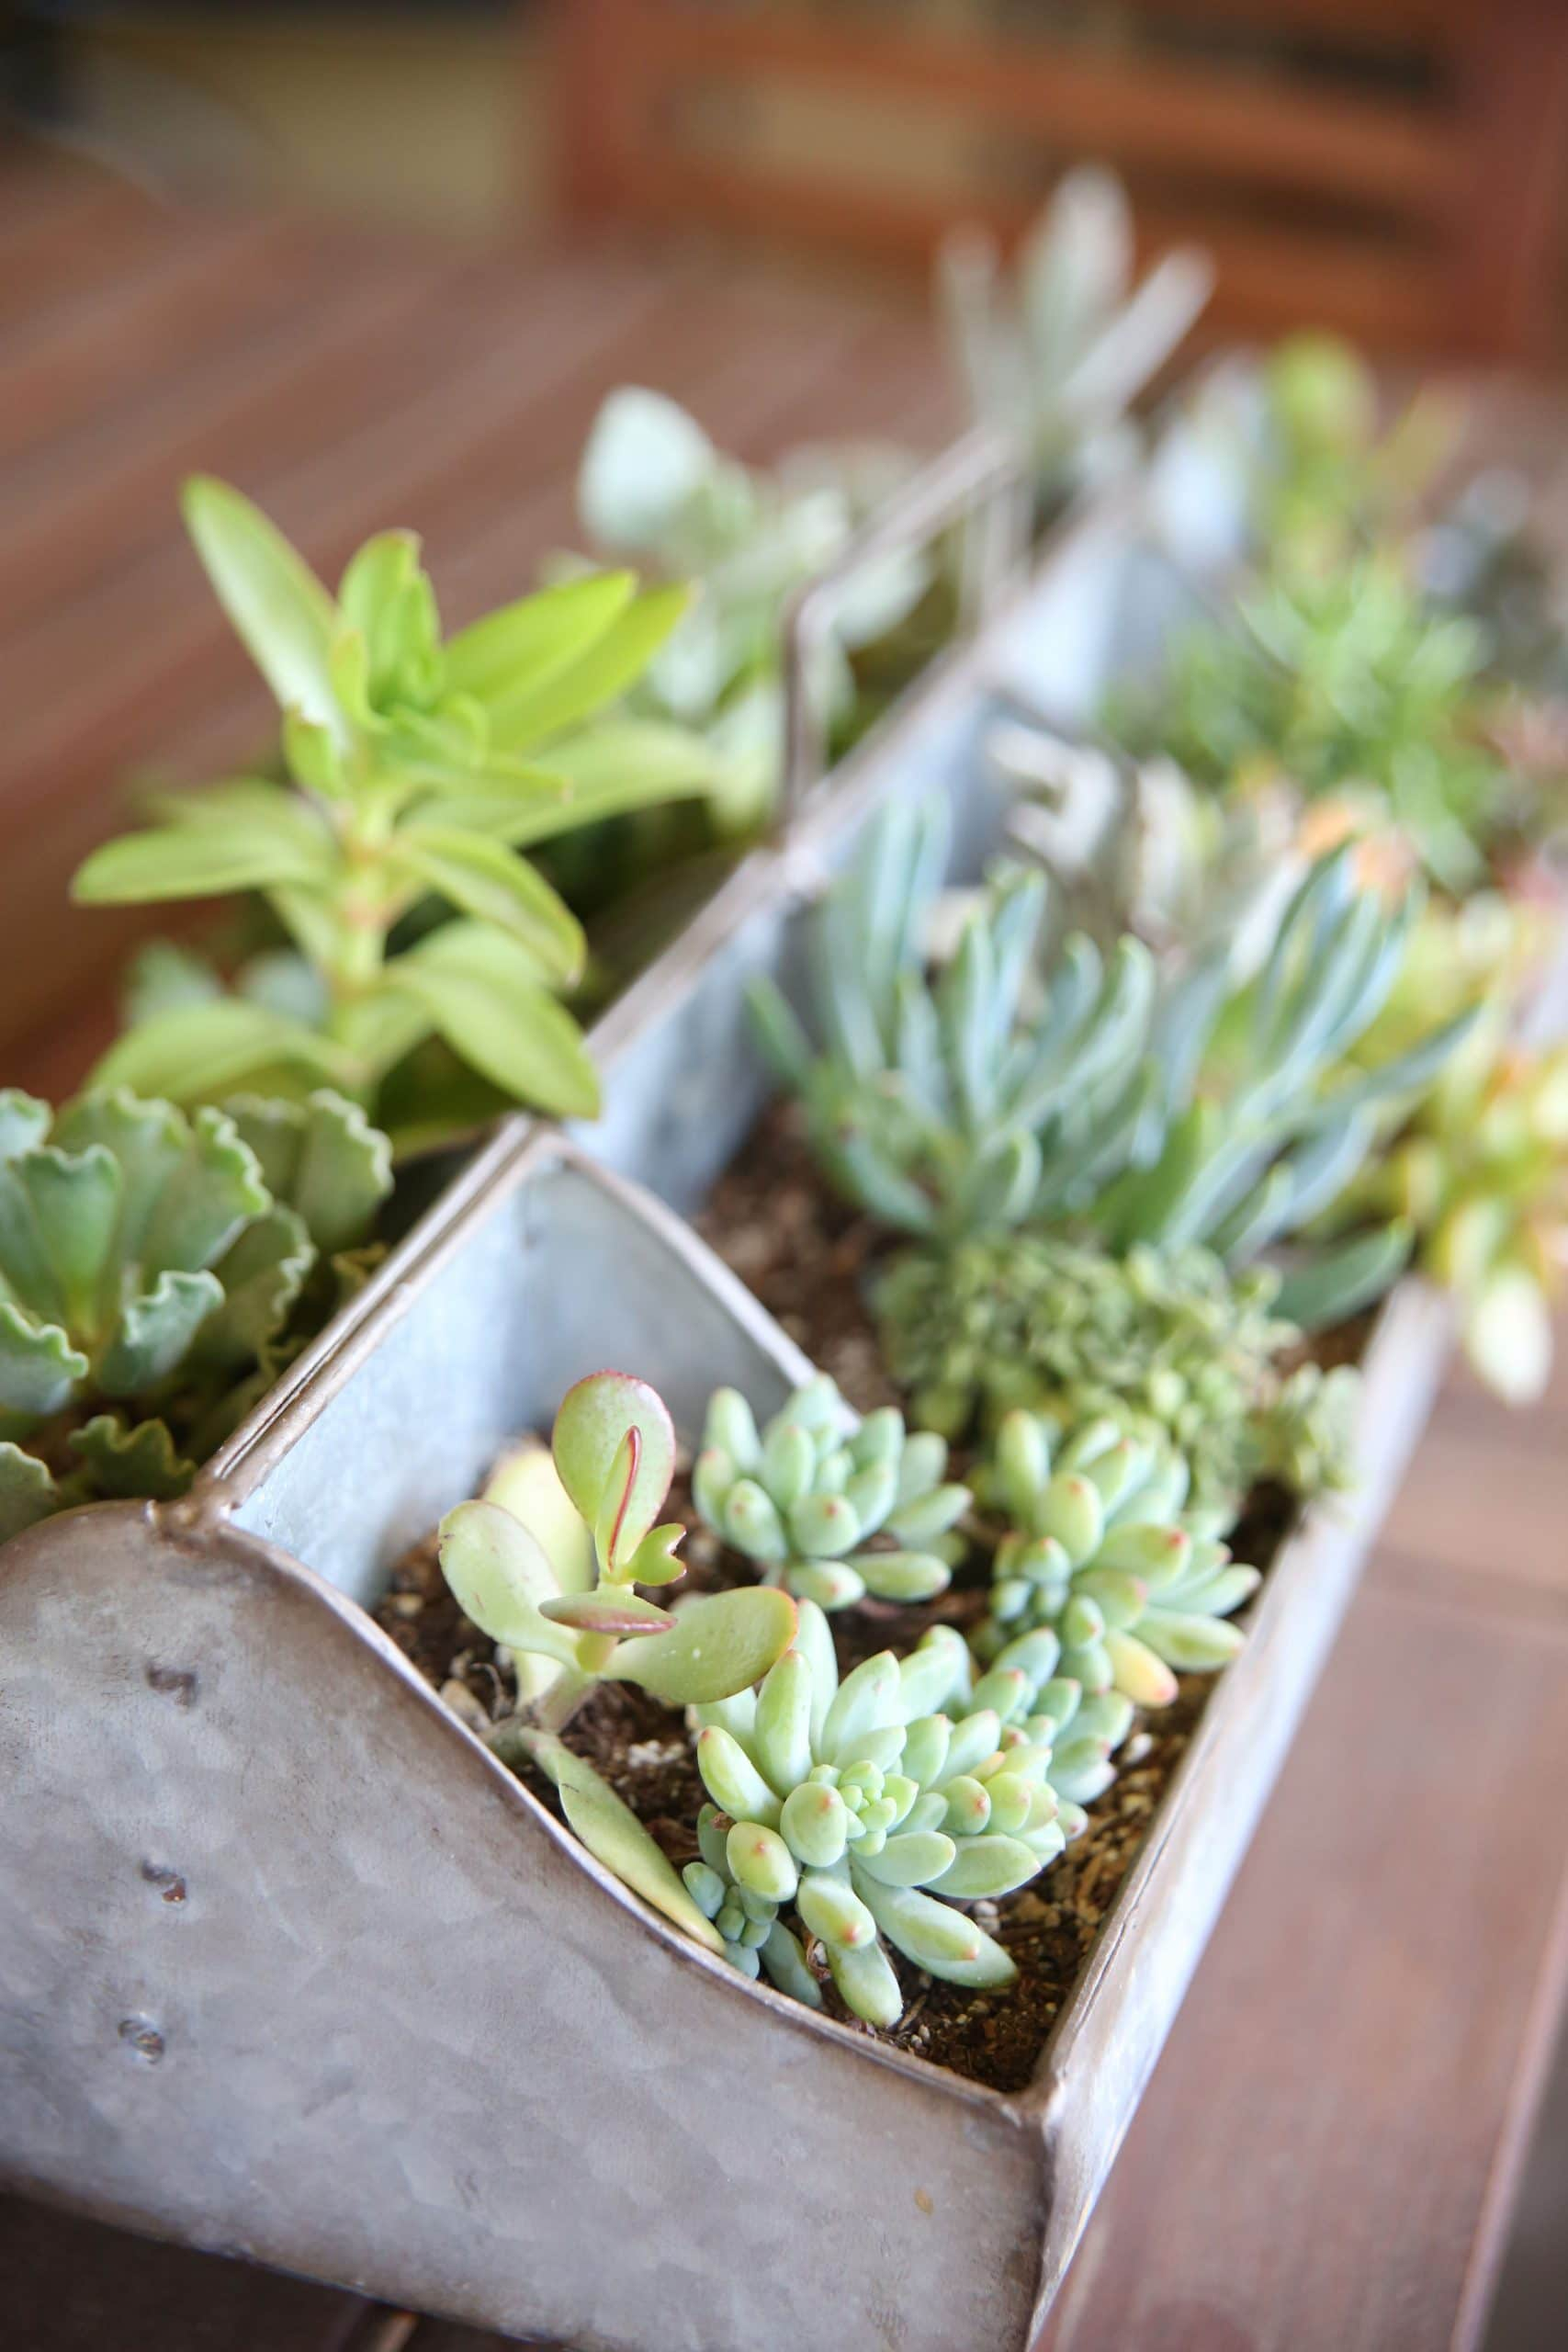 variety of small succulents planted in a tabletop stainless steel rectangular planter